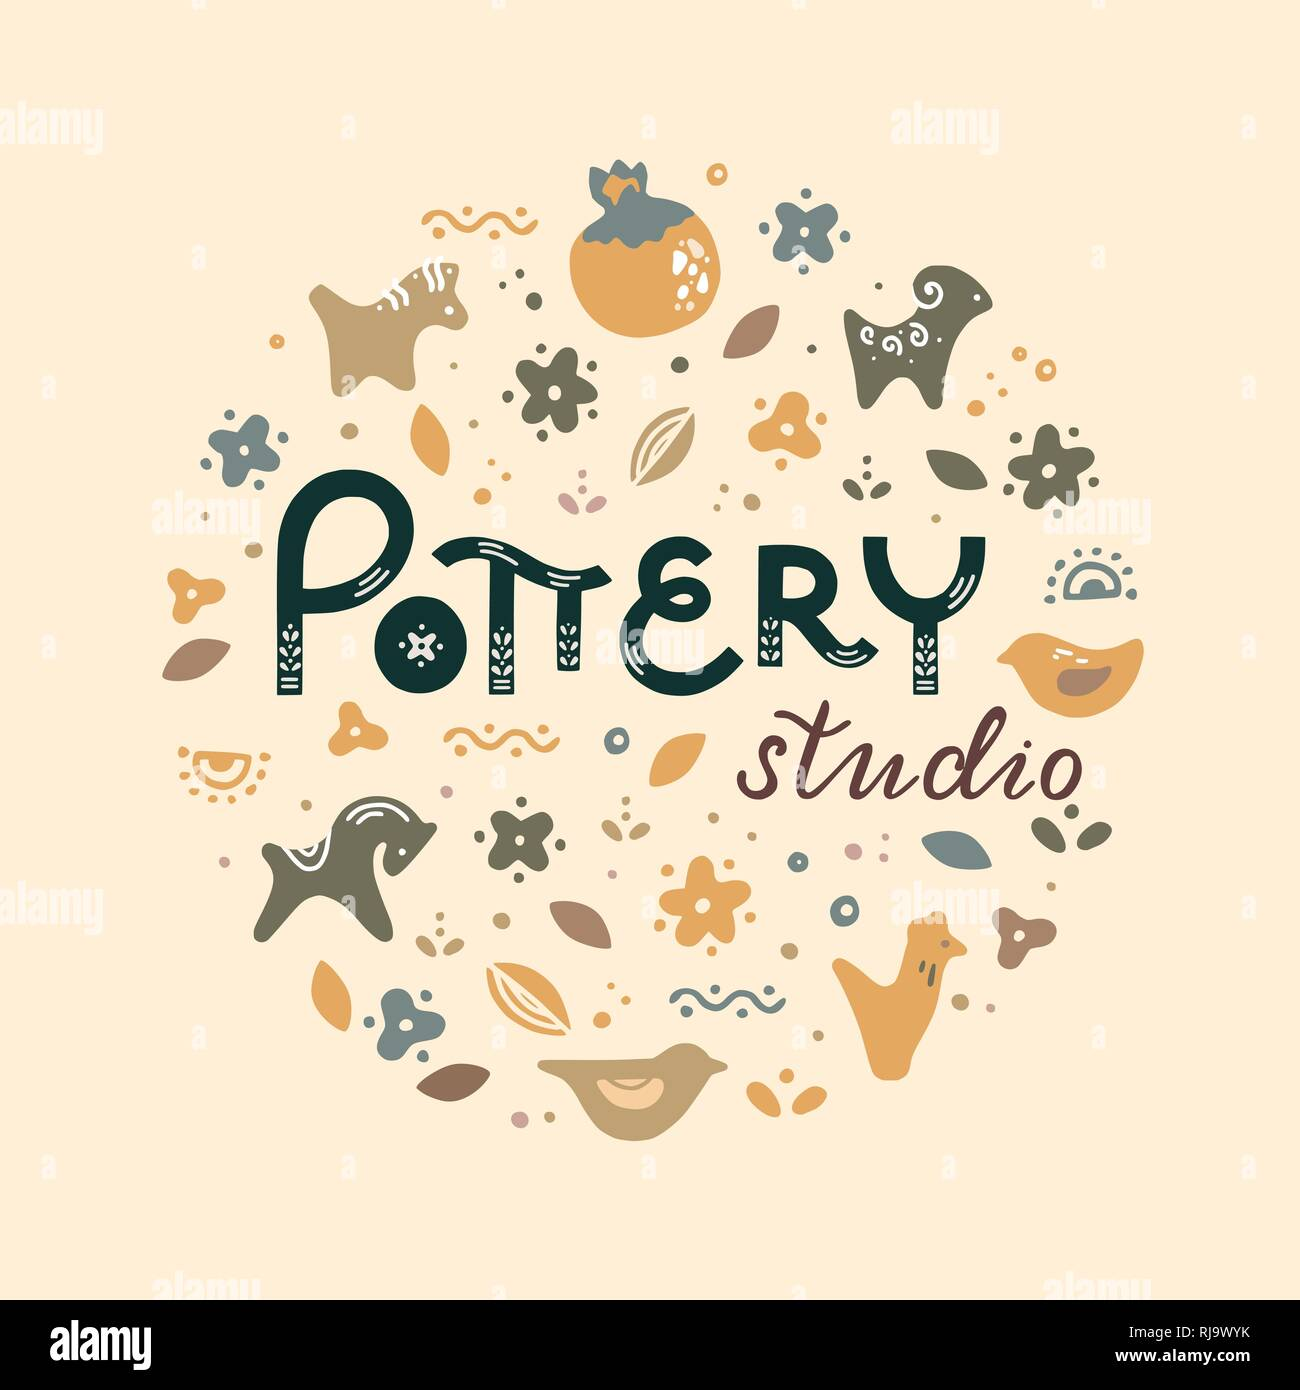 Circle template pottery workshop, ceramics classes banner illustration. Pottery wheel, potter, clay horse, and other ceramic products in the icon set in flat style with a doodle. - Stock Vector